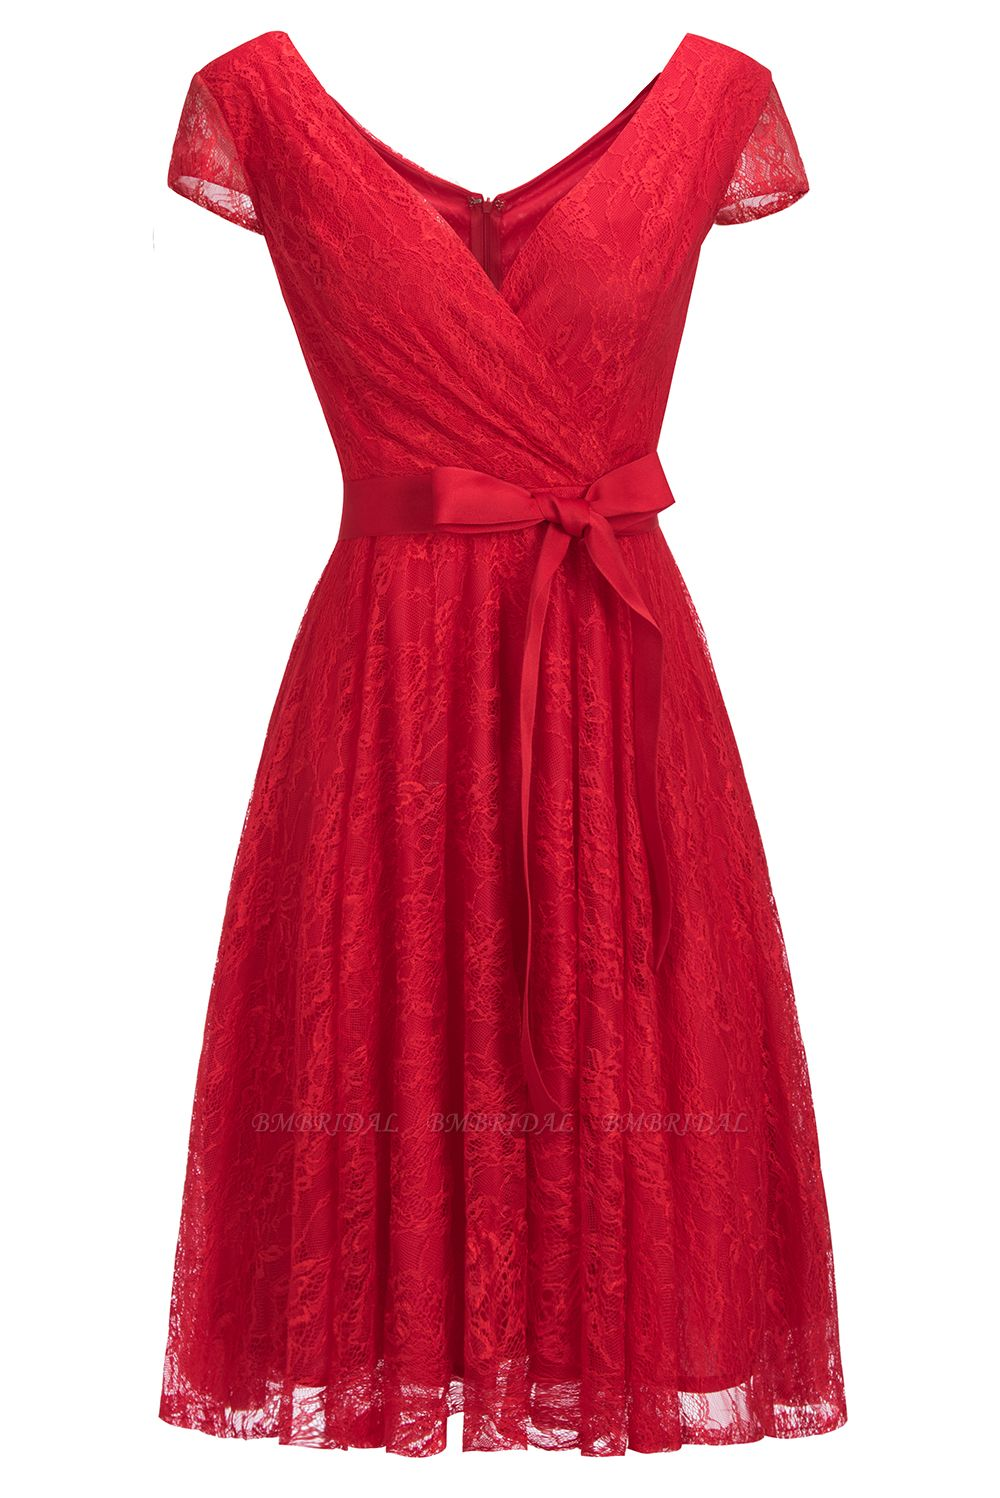 BMbridal A-line Shoet Sleeves V-neck Lace Dress with Bow Sash